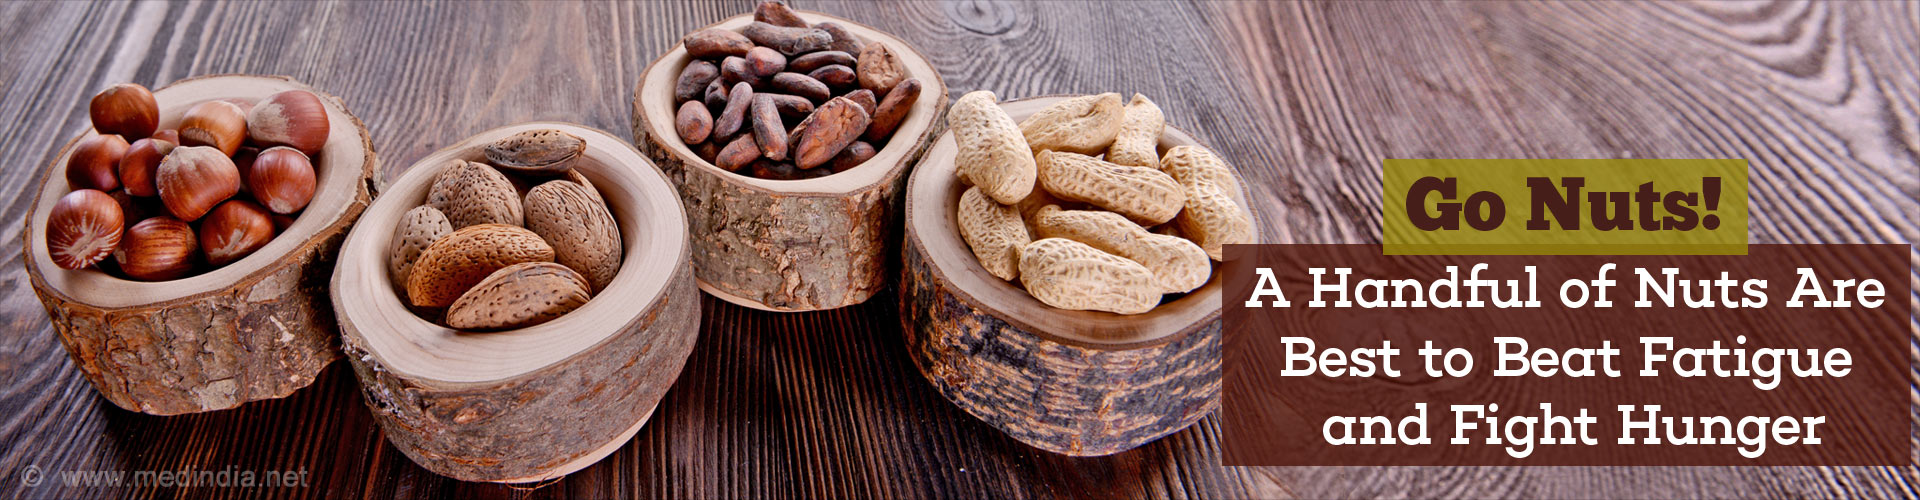 Go Nuts! A Handful of Nuts Are Best to Beat Fatigue and Fight Hunger